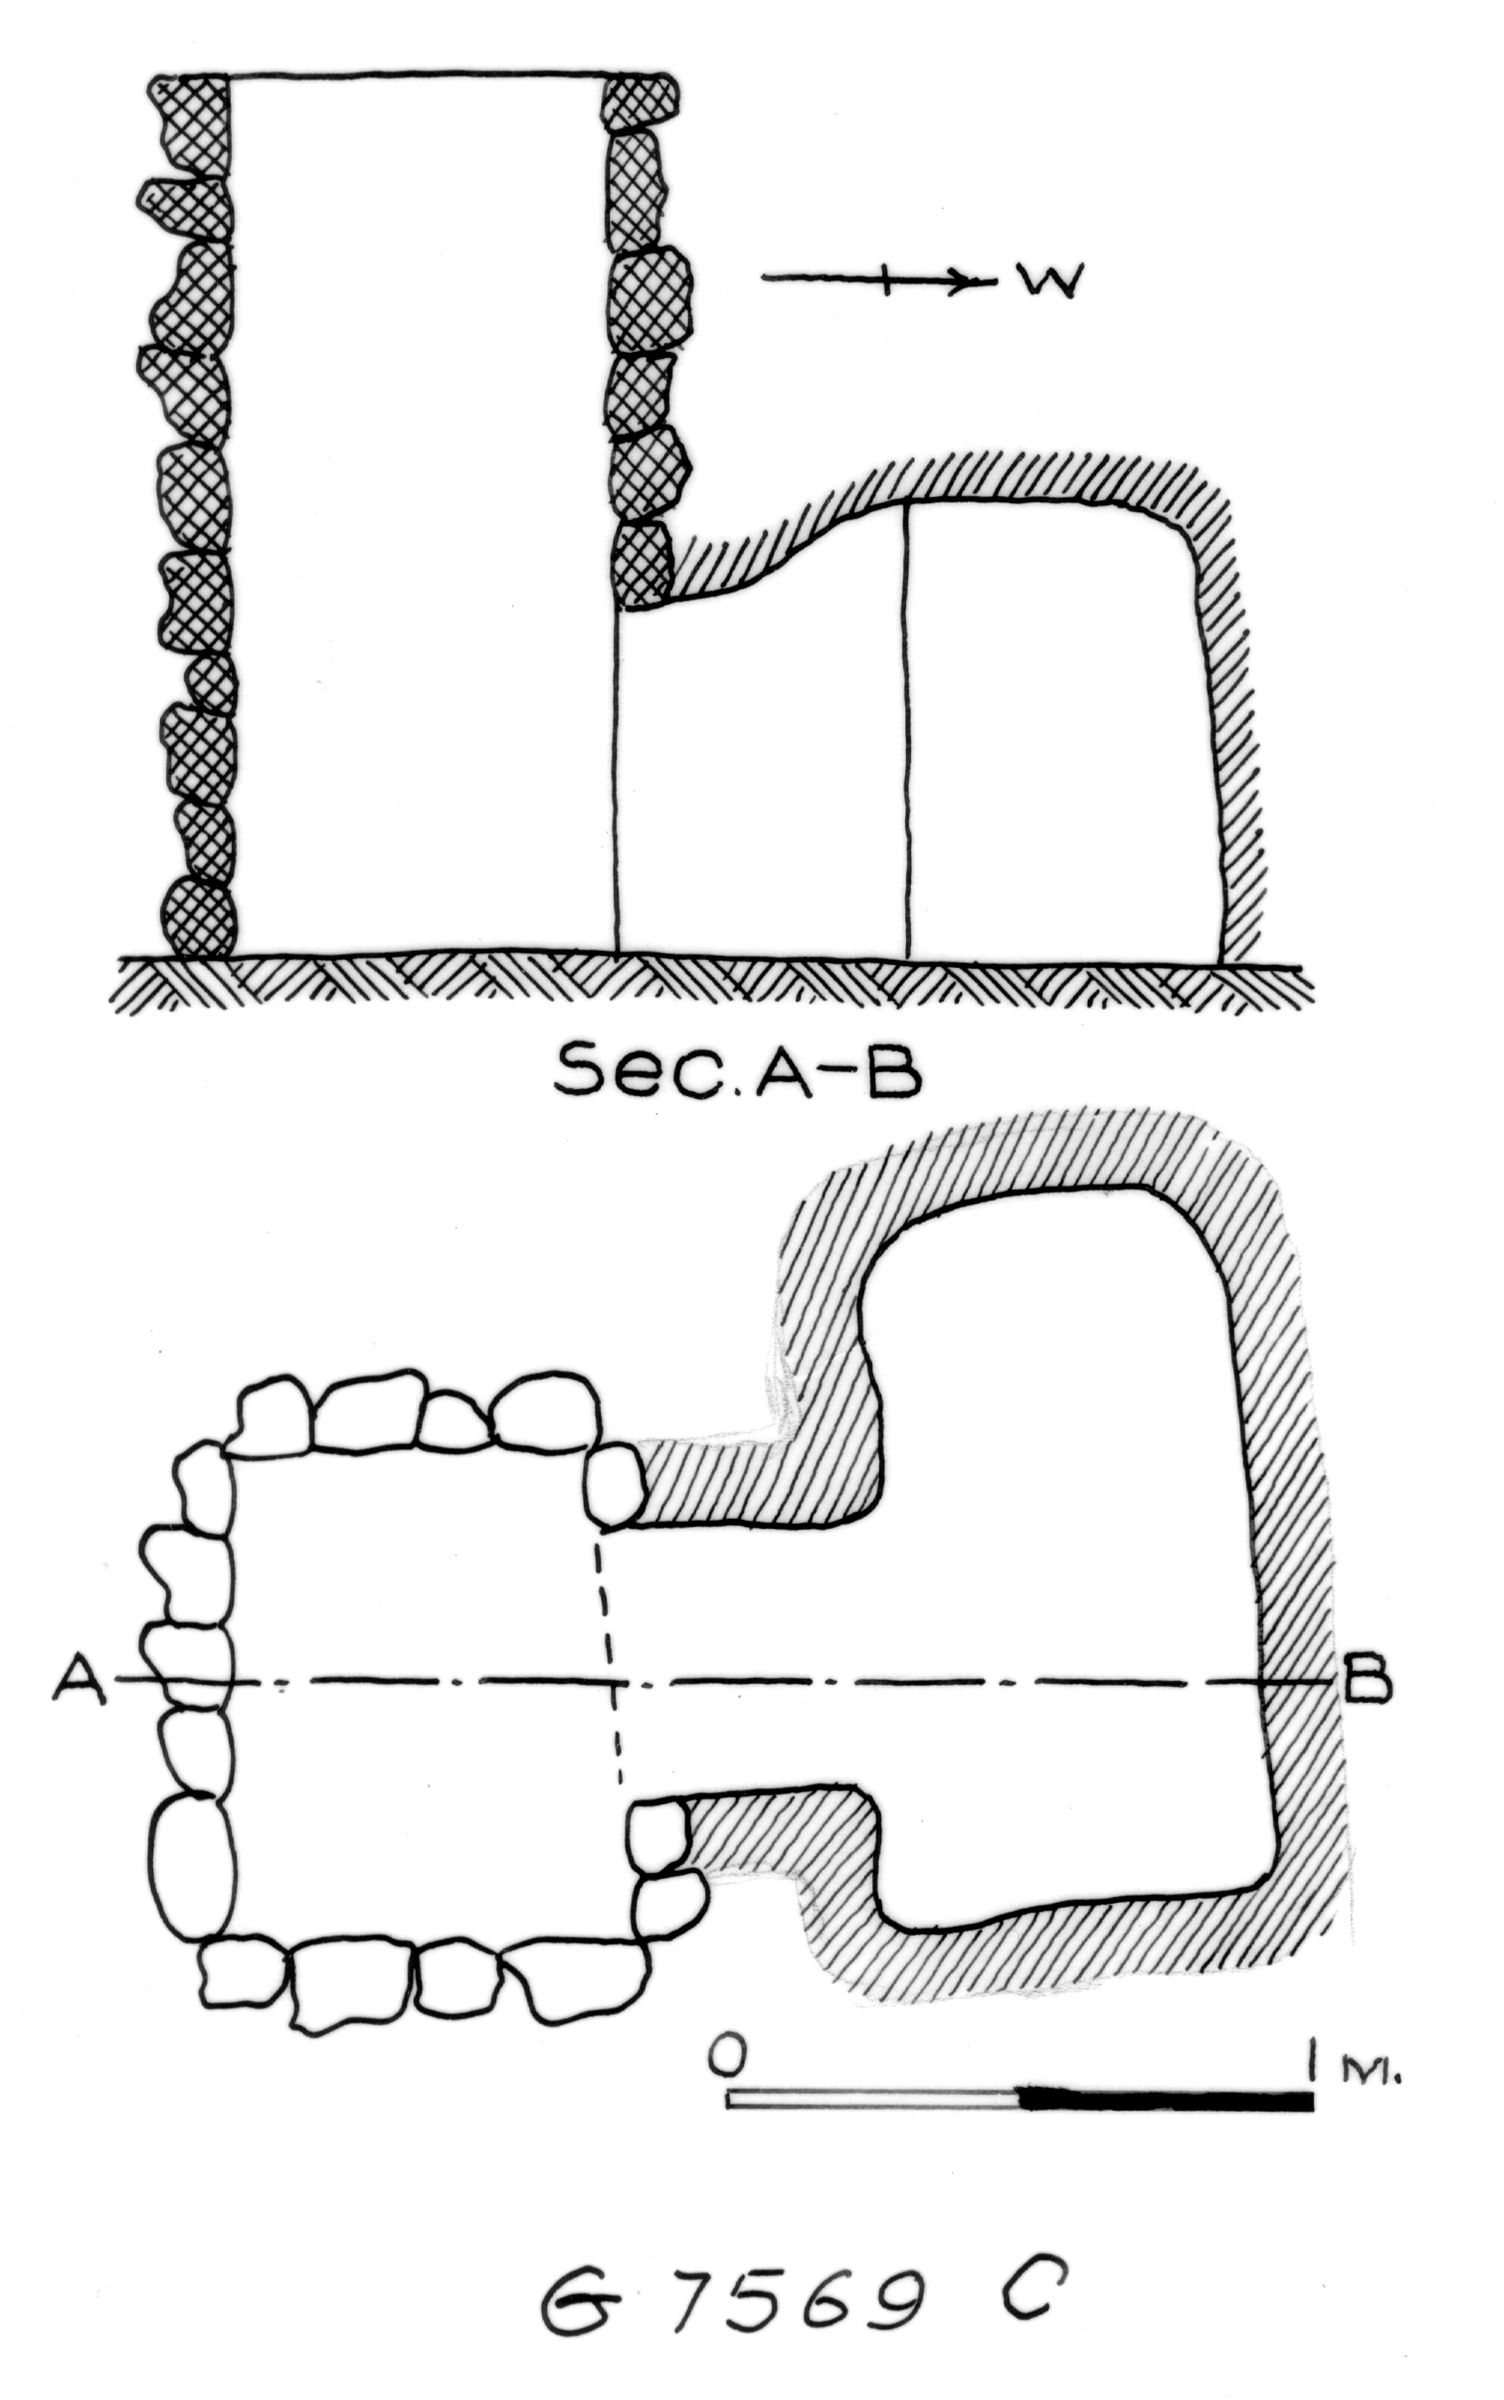 Maps and plans: G 7569, Shaft C